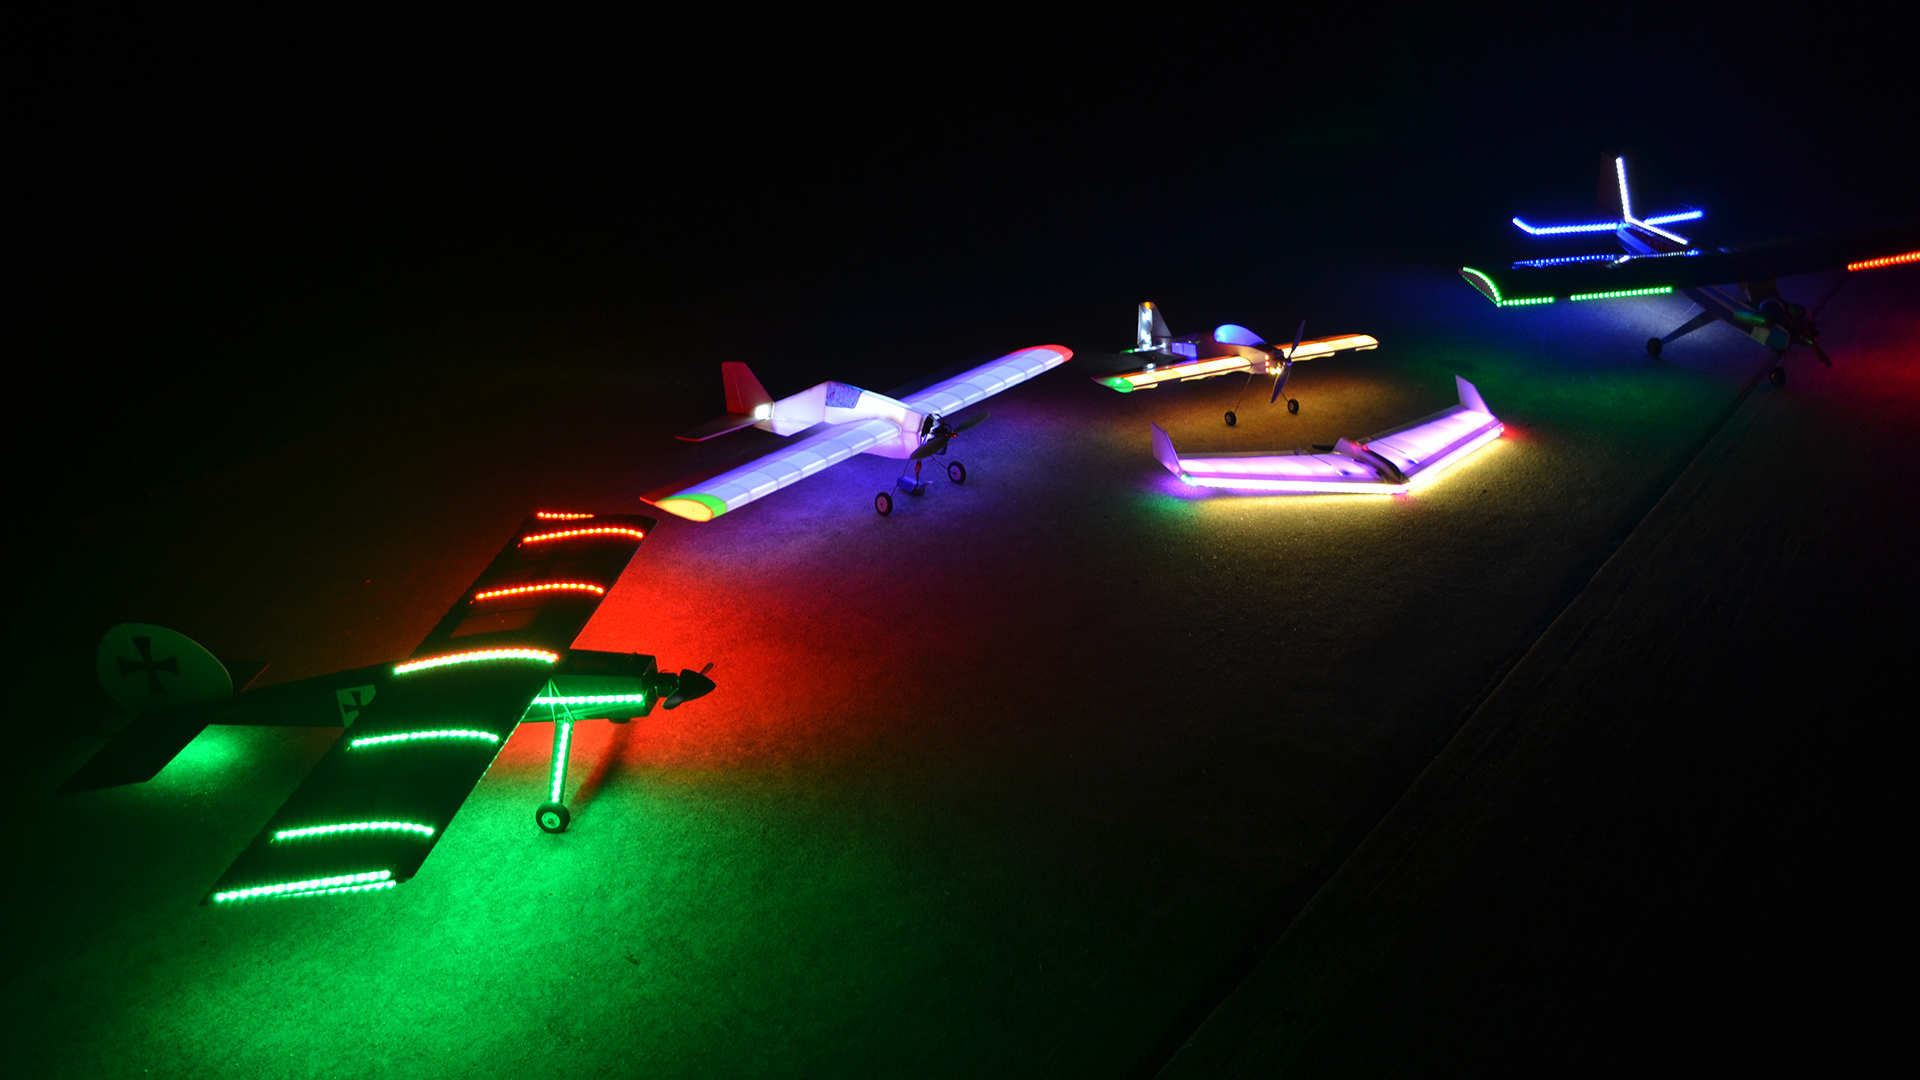 How To Fly RC Models at Night - Tested